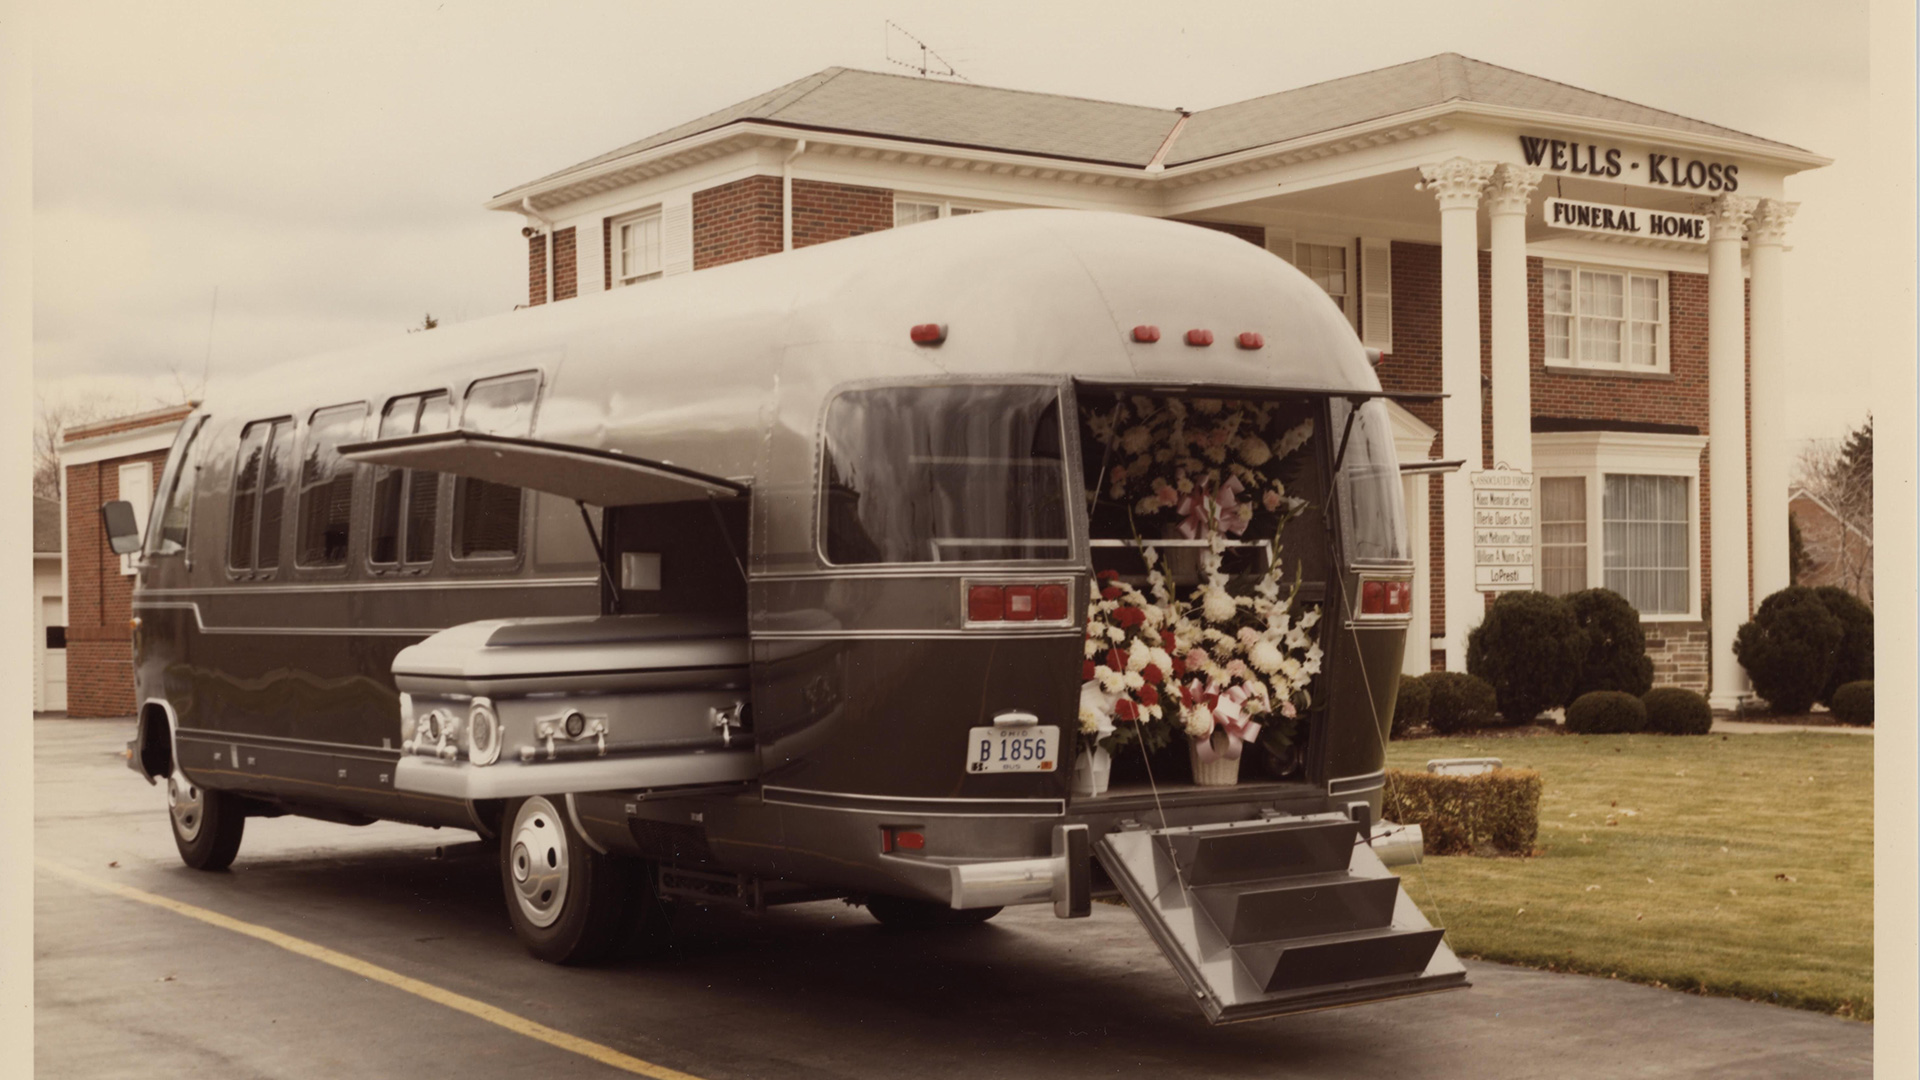 The Funeral Coach was produced from 1981-1991, and a rare 1984 Funeral Coach model will be on display in Airstream's new Heritage Center.